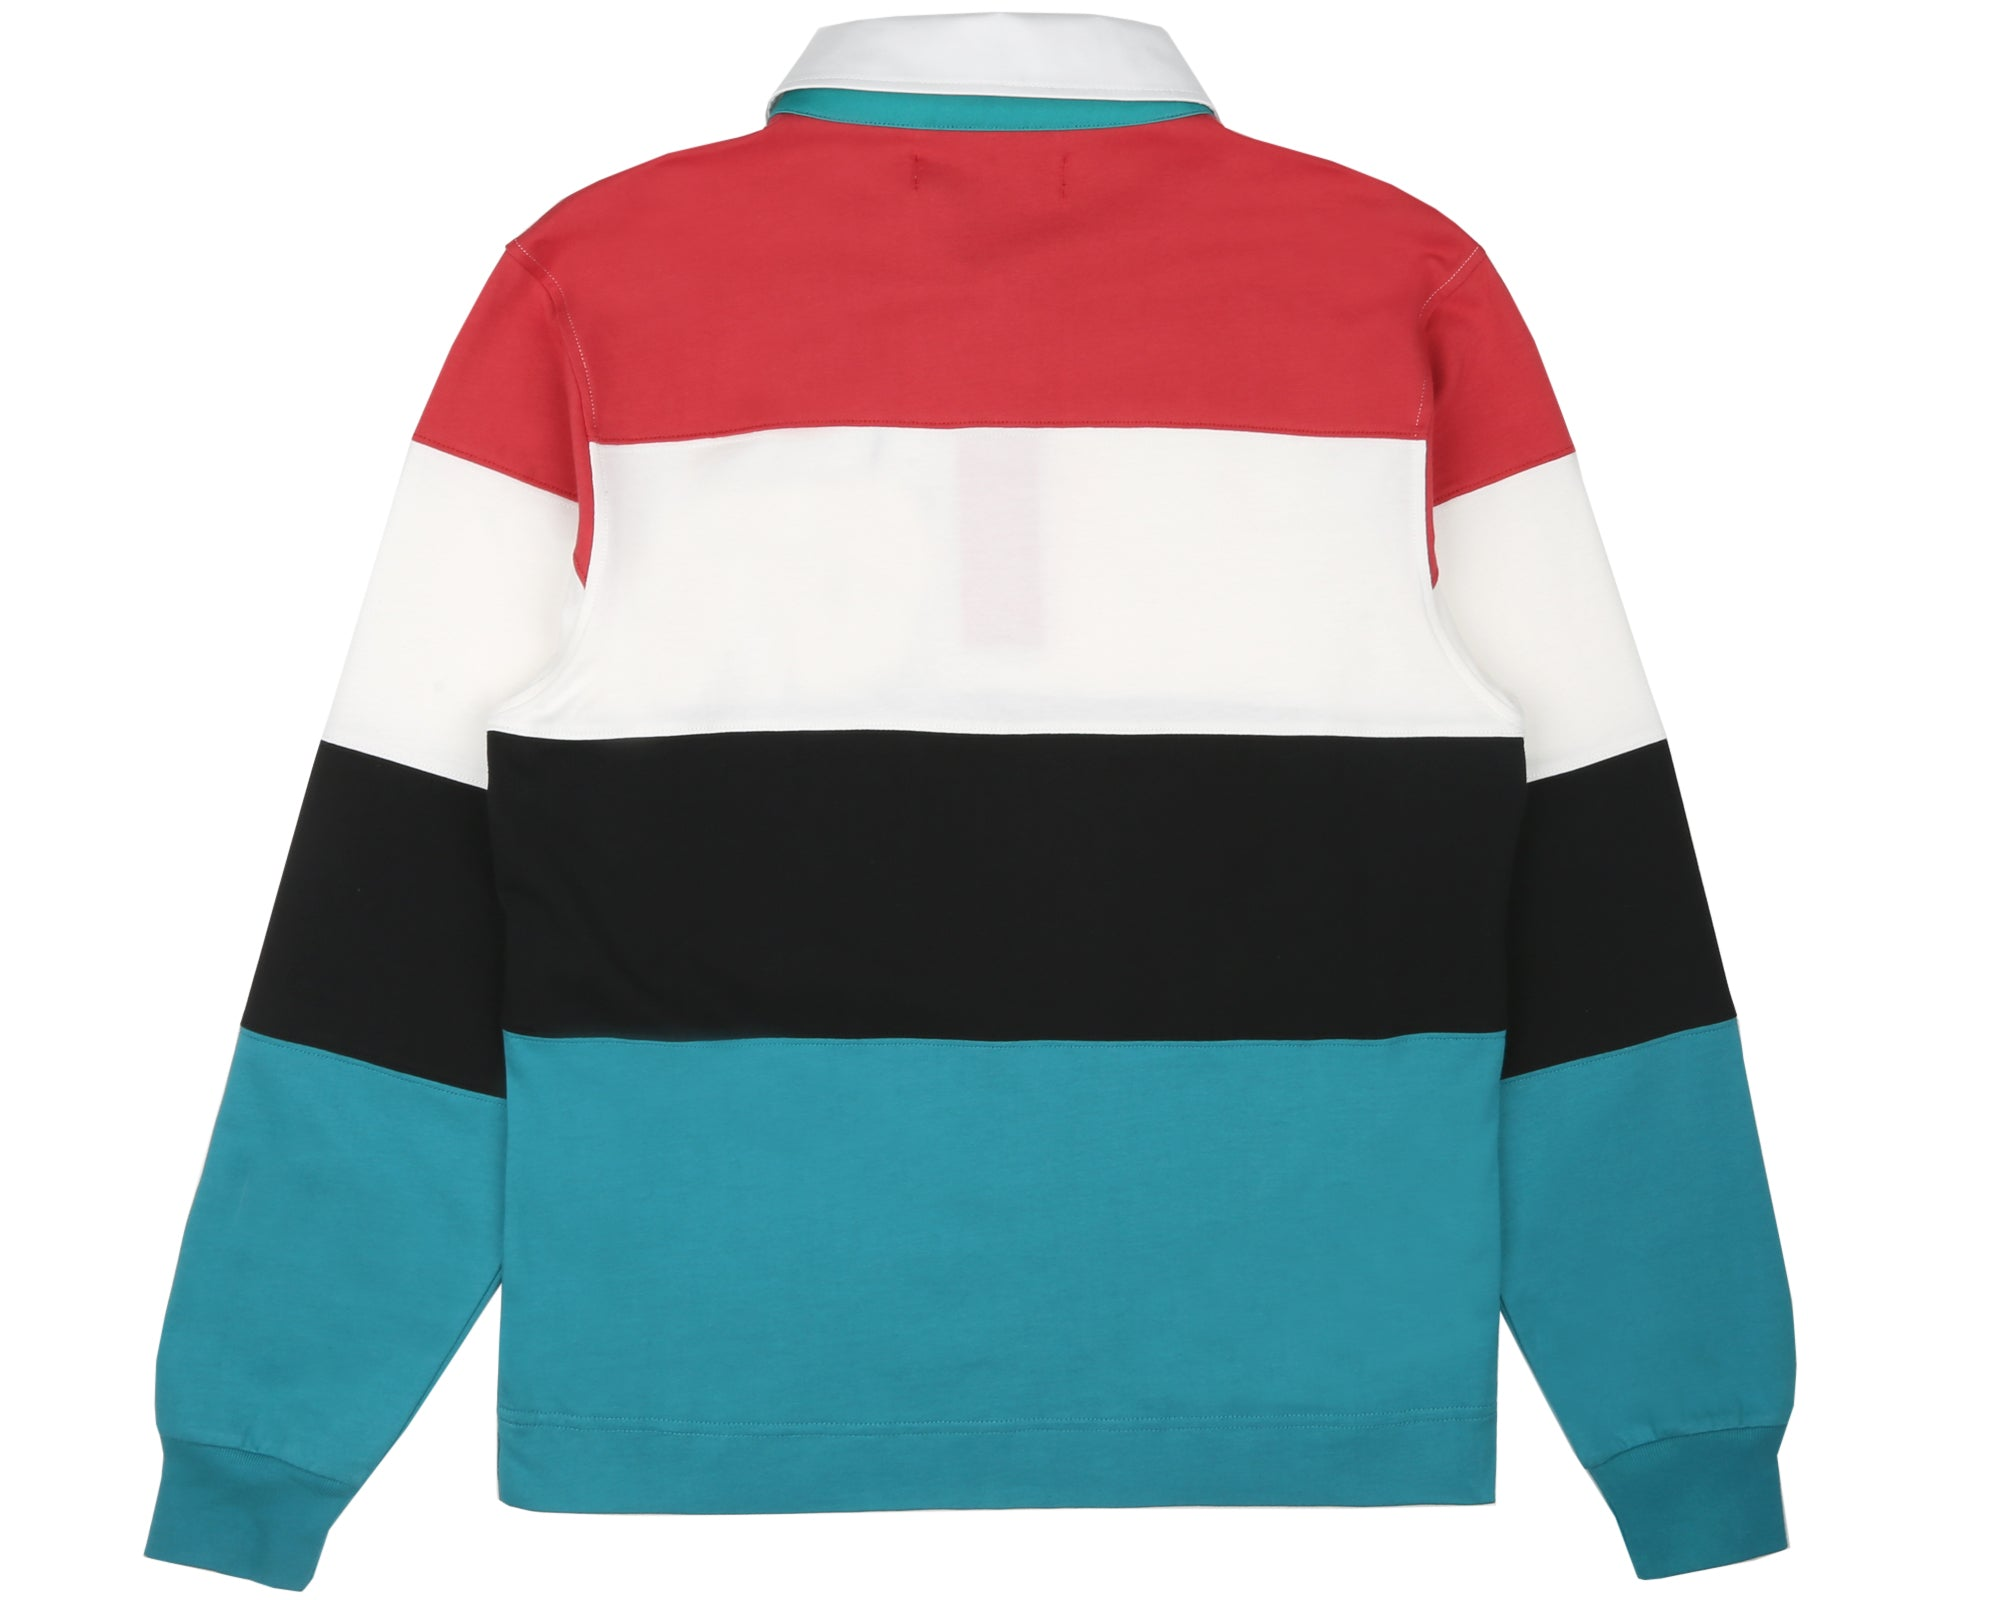 CUT & SEW RUGBY SHIRT - STRIPED